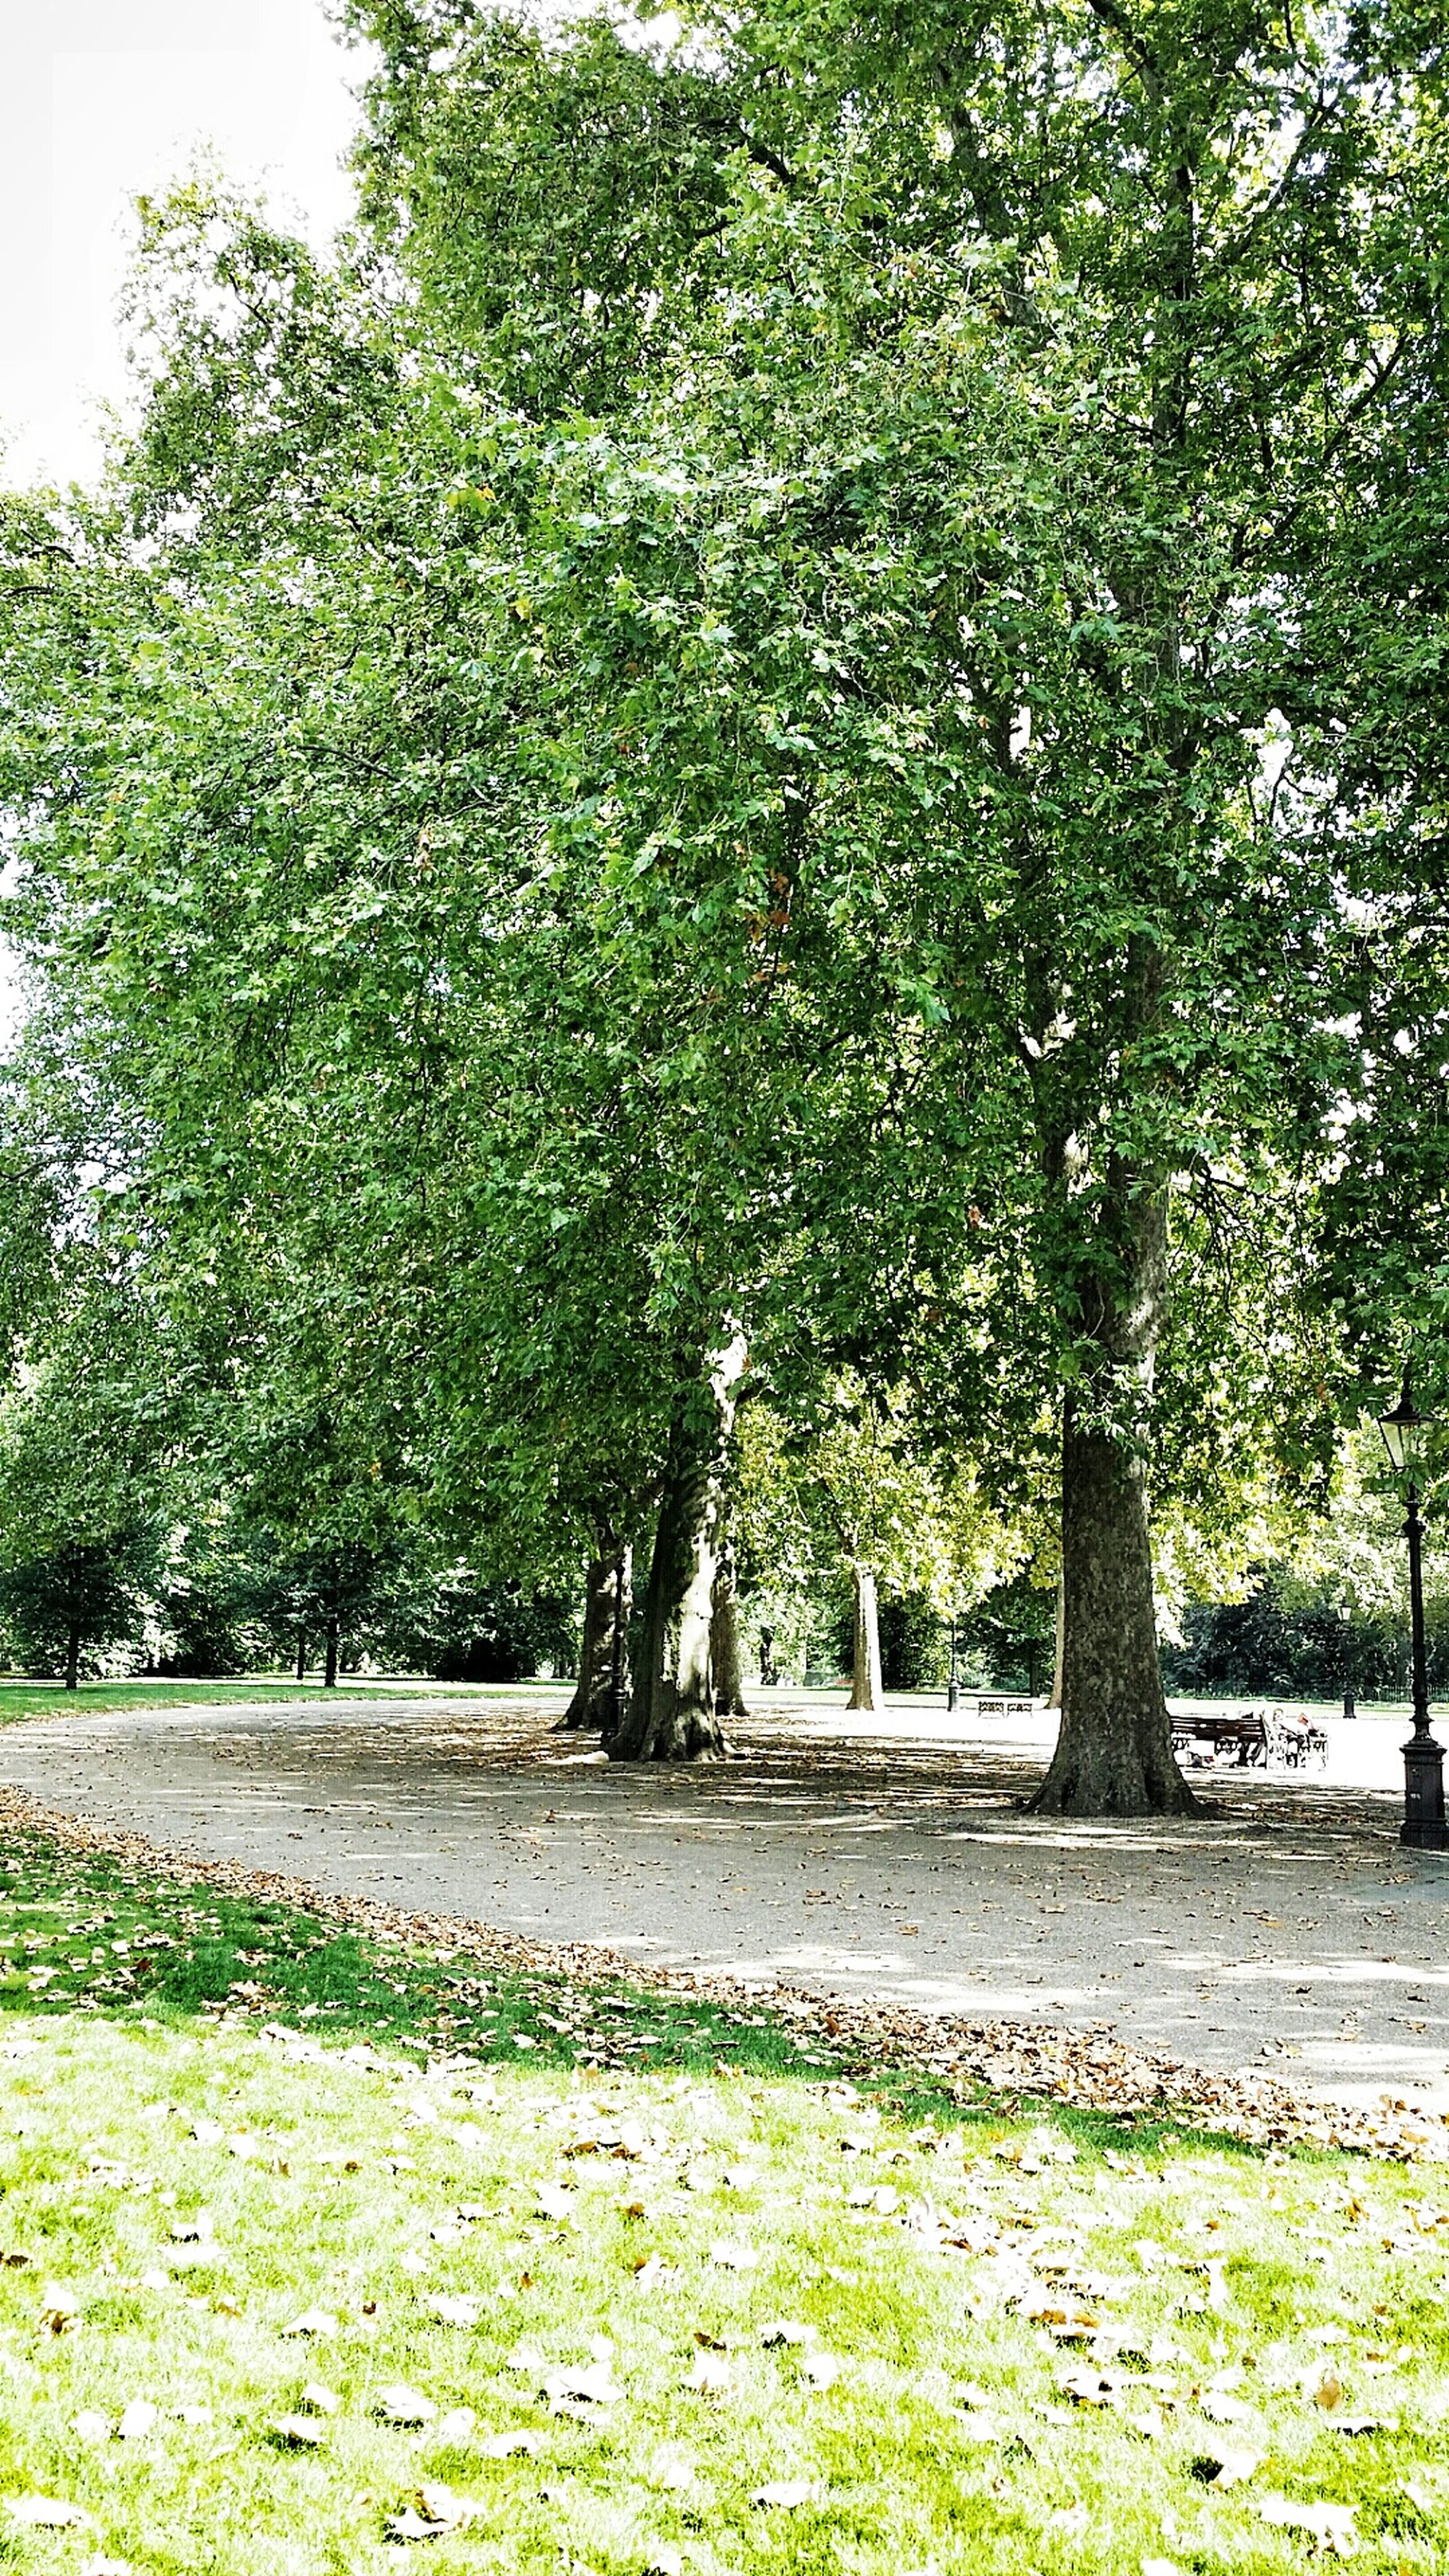 tree, growth, green color, park - man made space, grass, branch, tranquility, nature, tree trunk, park, beauty in nature, tranquil scene, sunlight, lush foliage, footpath, day, green, scenics, bench, outdoors